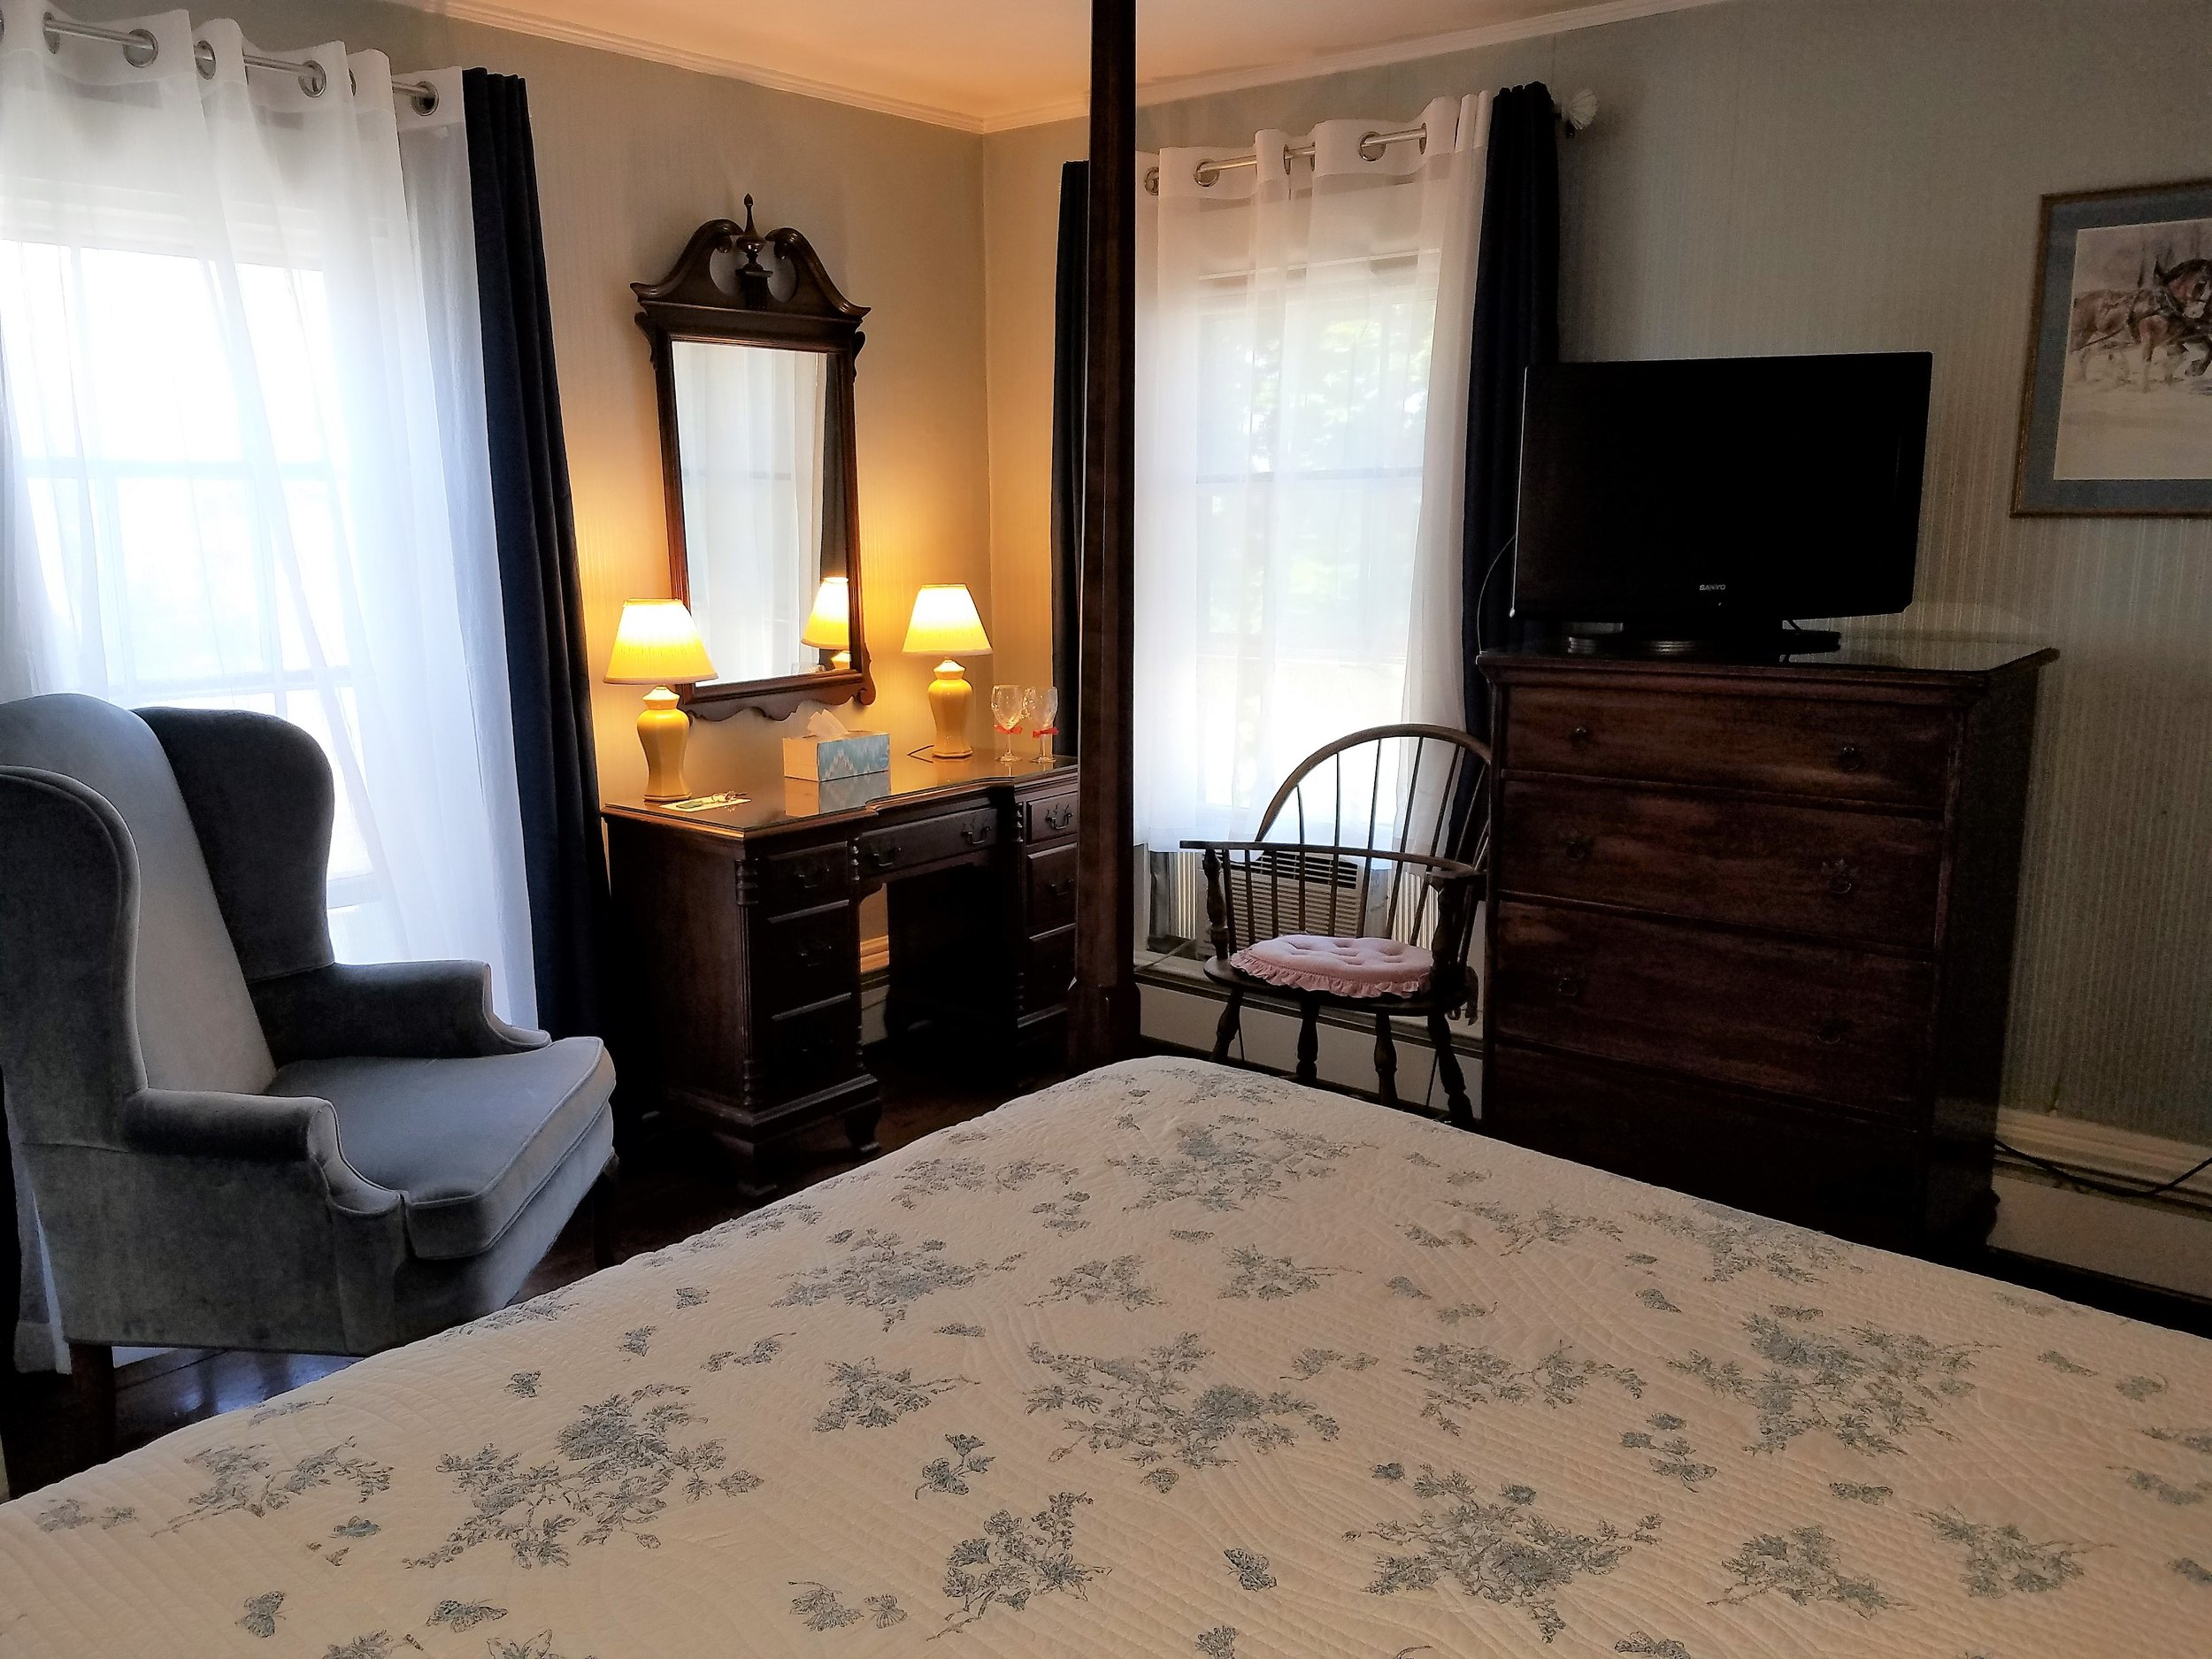 Blue Room with Queen Bed and blackout curtains for late sleepers -  BOOK IT